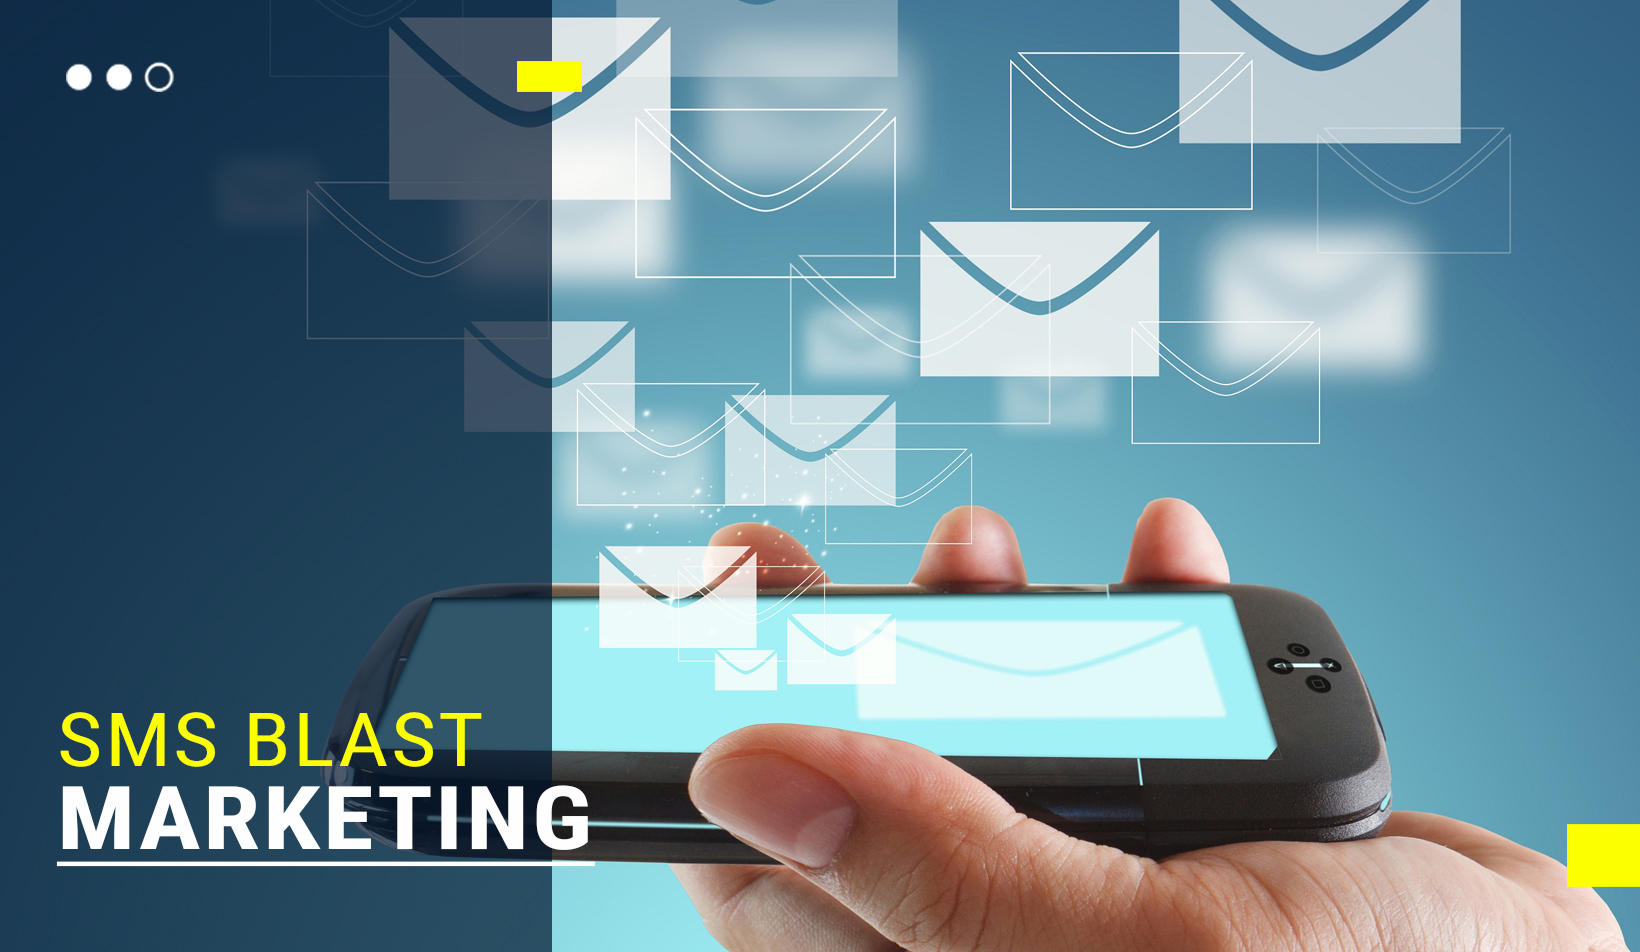 Functions and Benefits of SMS Blast Marketing